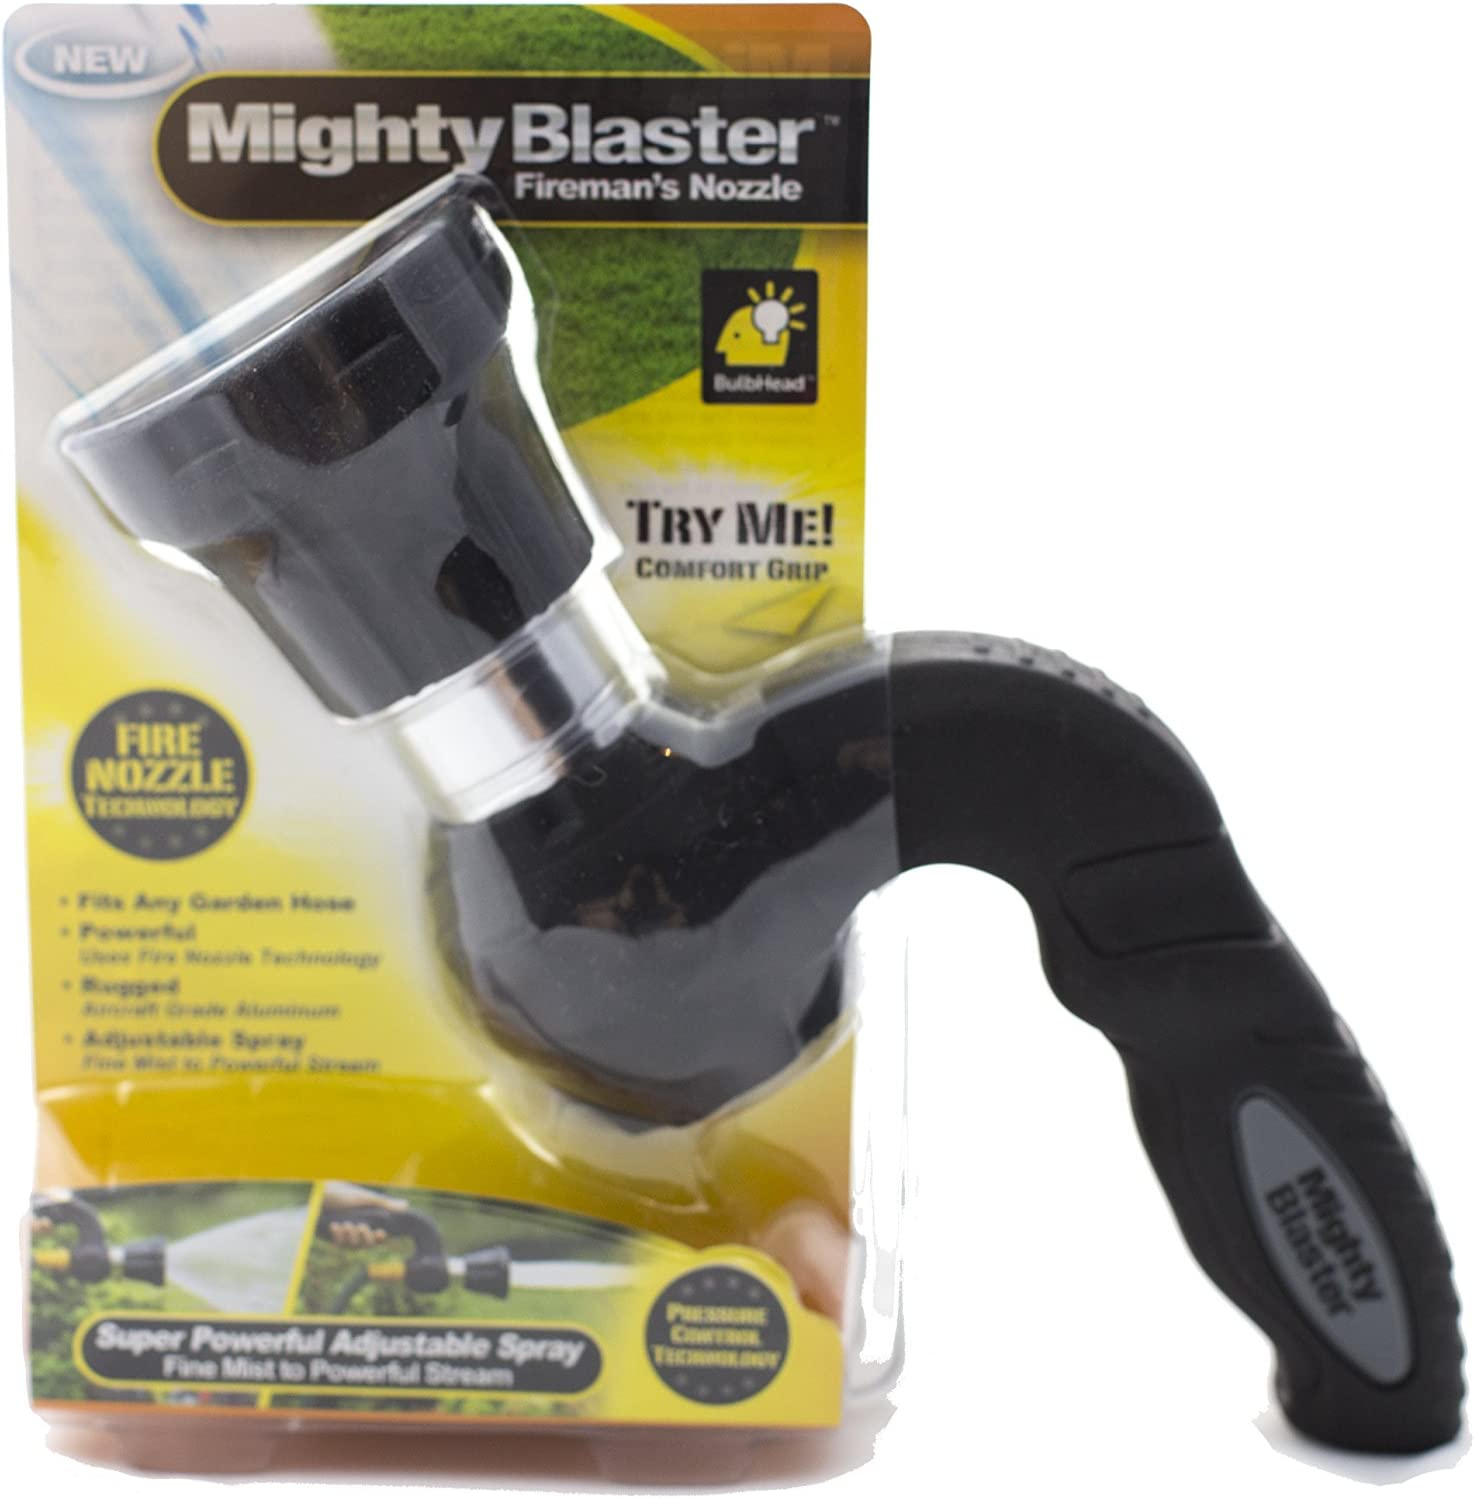 Mighty Blaster Hose Nozzle, Garden Sprayer - by BulbHead - Power Wash and Water Your Lawn Like a Pro!